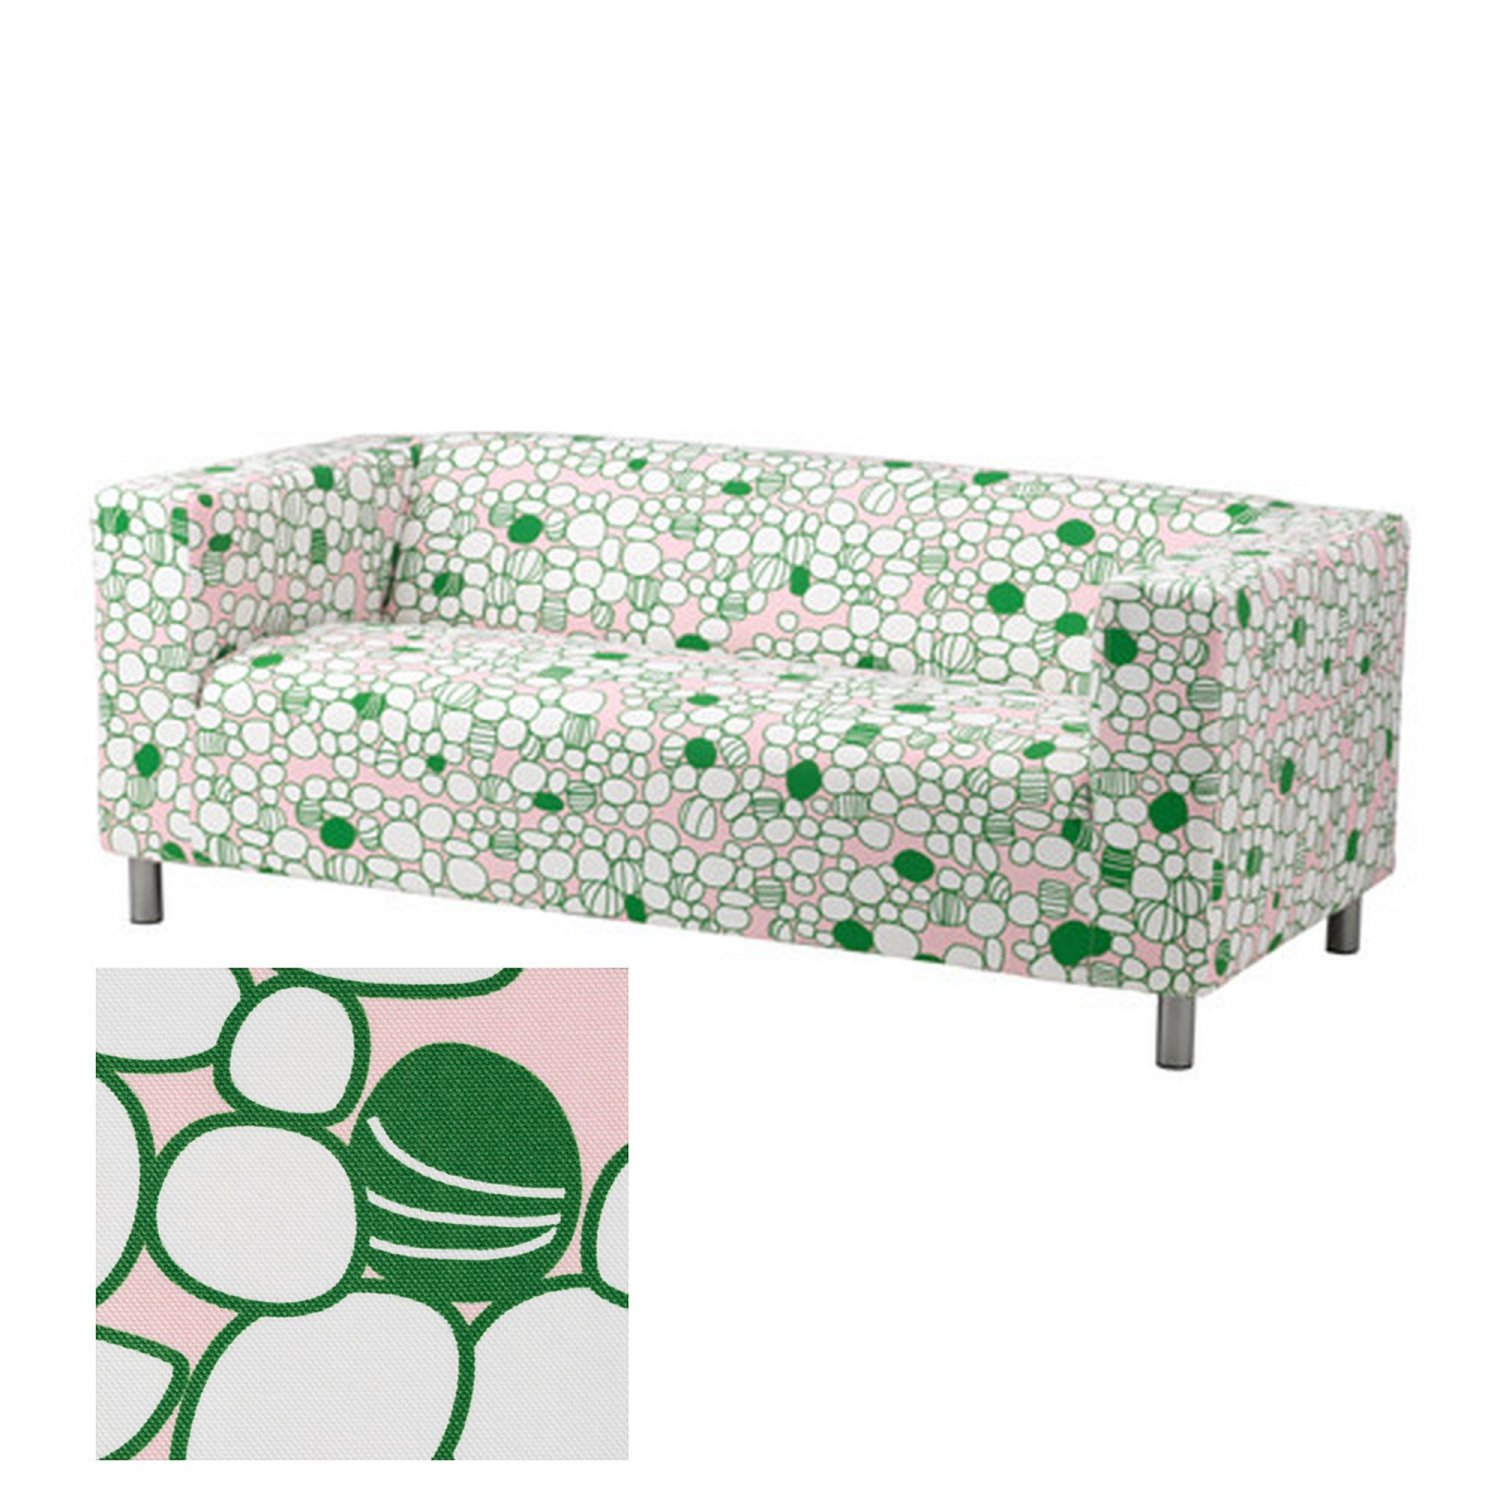 IKEA KLIPPAN Sofa SLIPCOVER Cover Green Pink MOD RETRO Marrehill